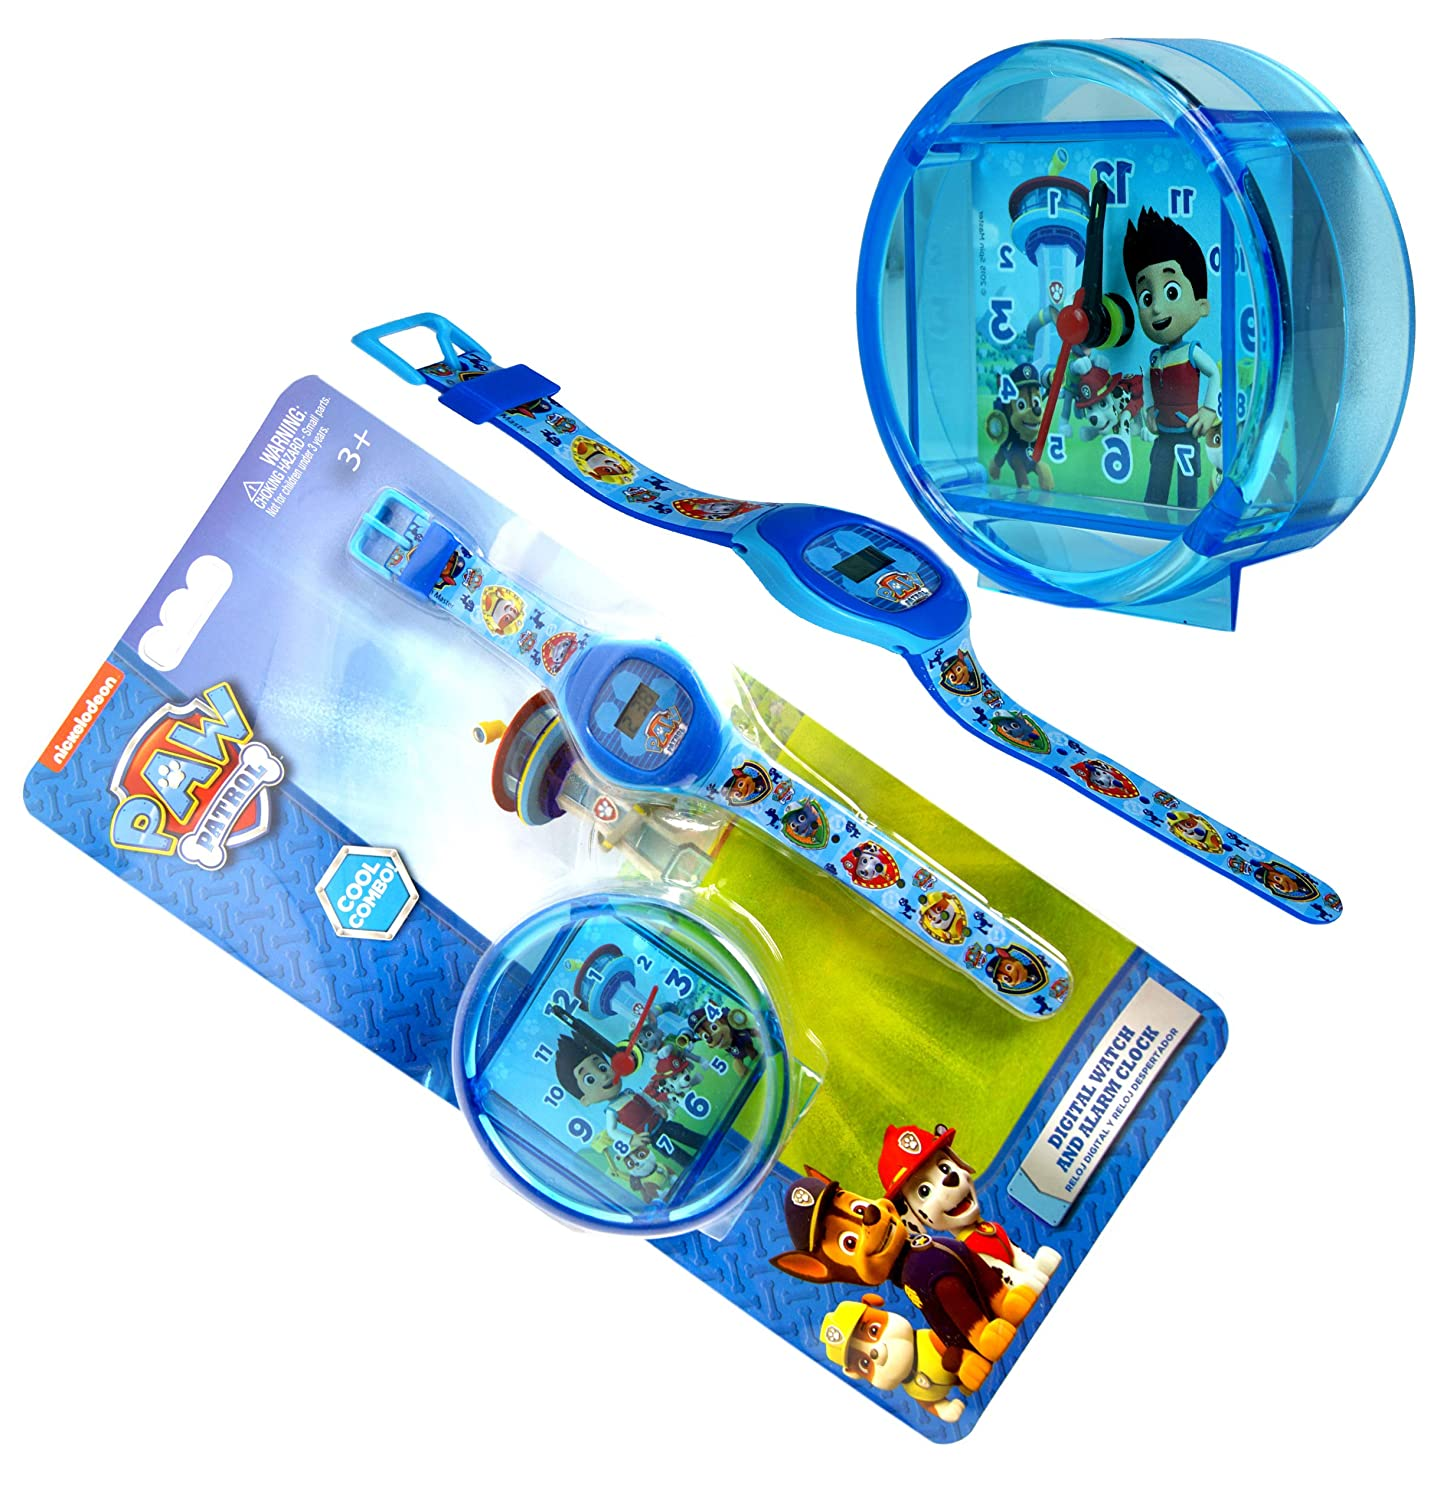 Amazon.com: Paw Patrol, Digital Watch & Alarm Clock Set Official Licensed: Home & Kitchen